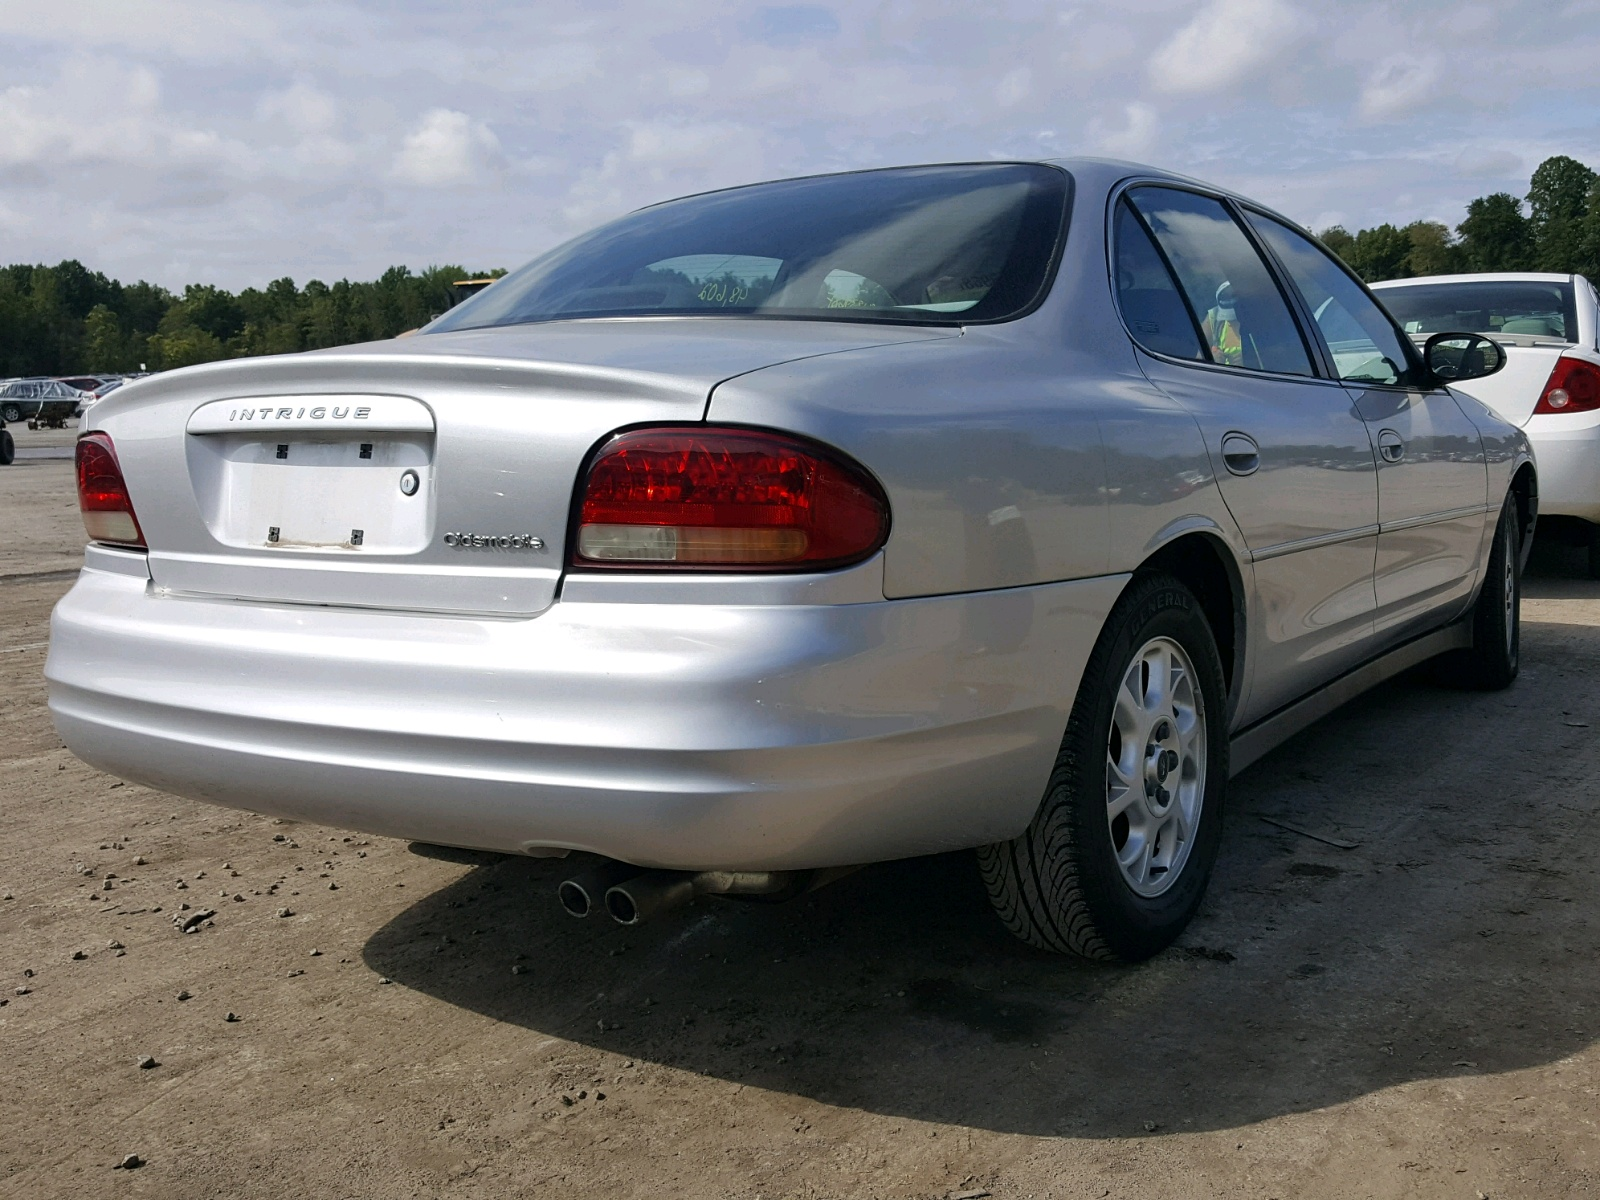 hight resolution of  1g3wh52h31f191608 2001 oldsmobile intrigue g 3 5l rear view 1g3wh52h31f191608